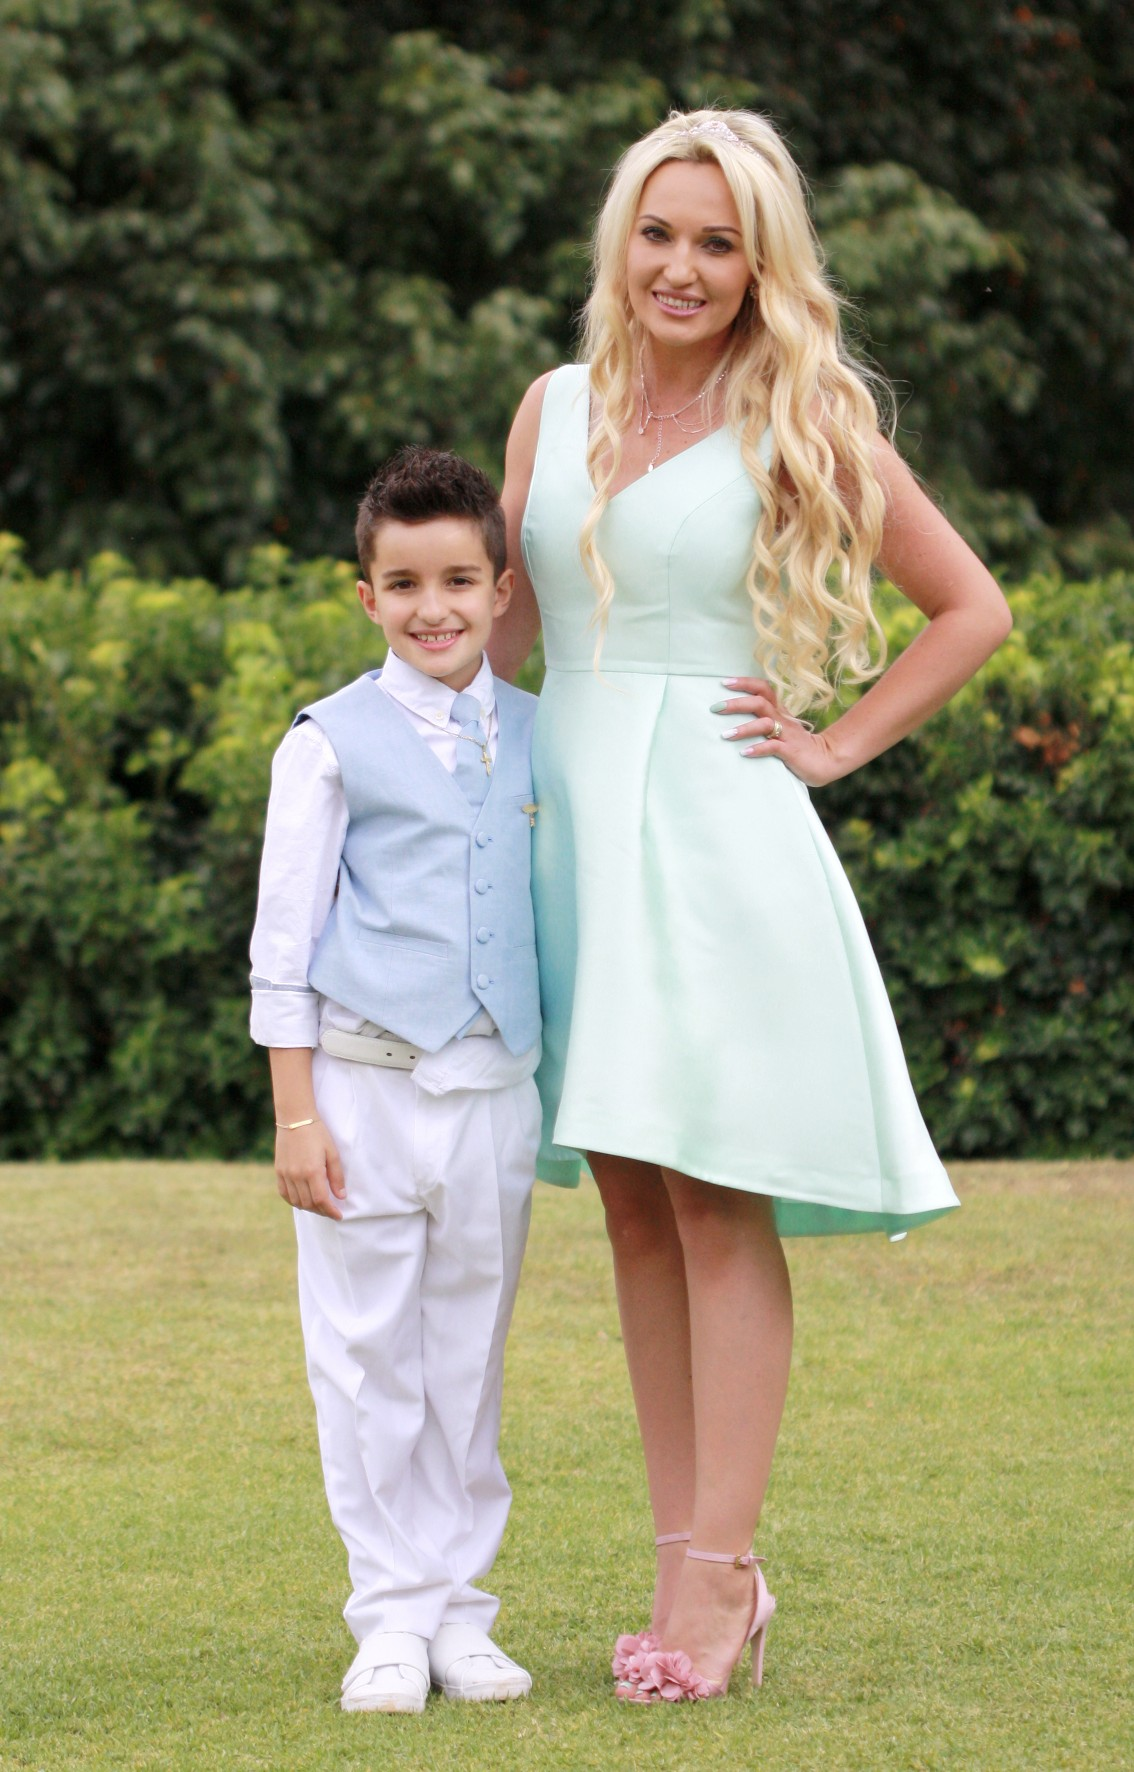 Tiago's First Holy Communion